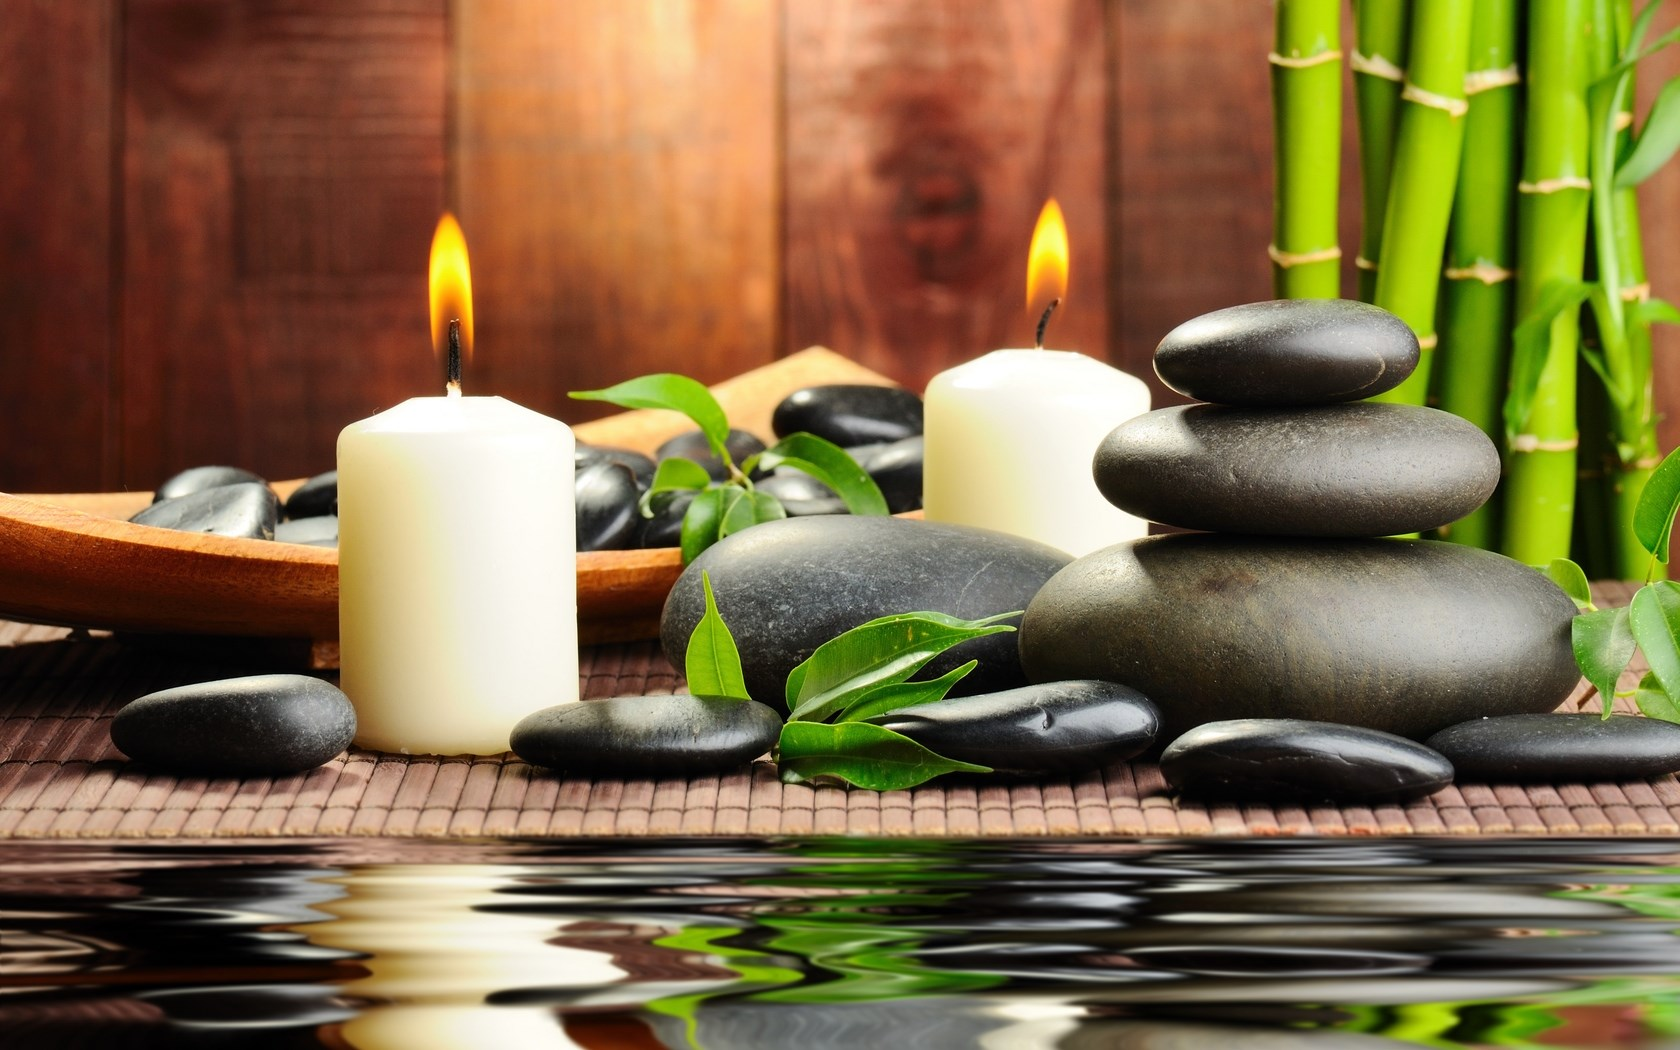 18 Mar 2014 02 54 50Stones Black Massage Spa Candles Water Bamboo Wallpapers 75